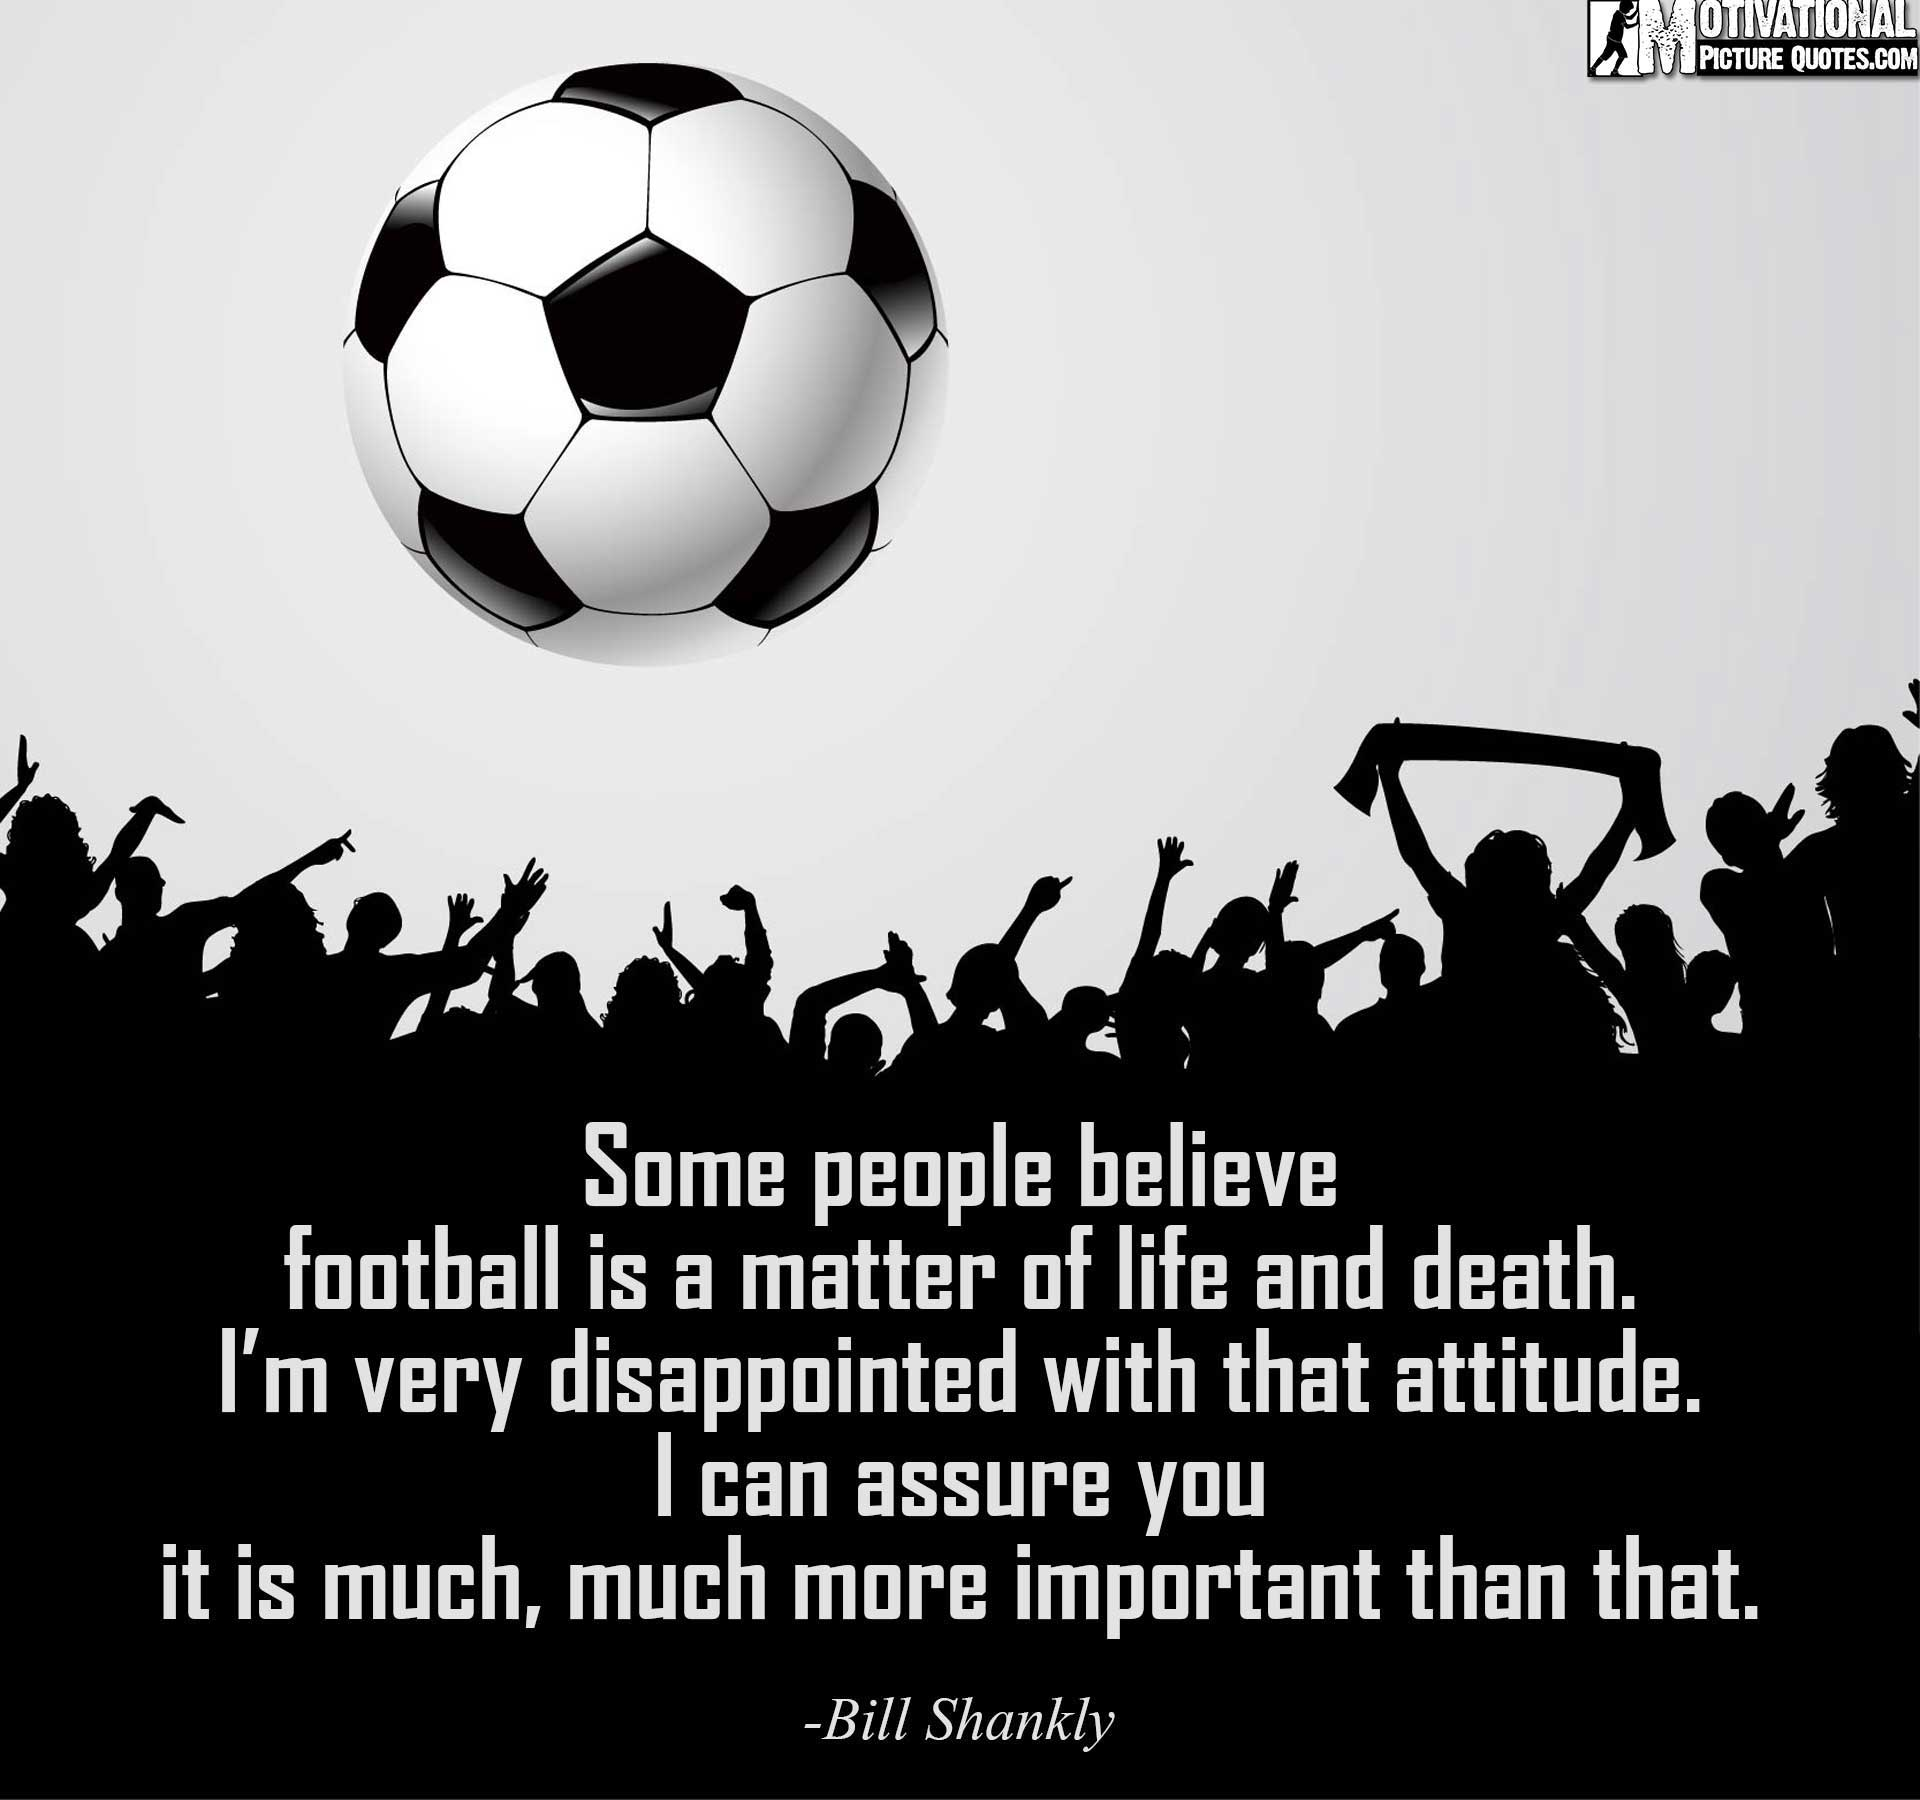 45+ Inspirational Football Quotes Images | Soccer Quotes ...